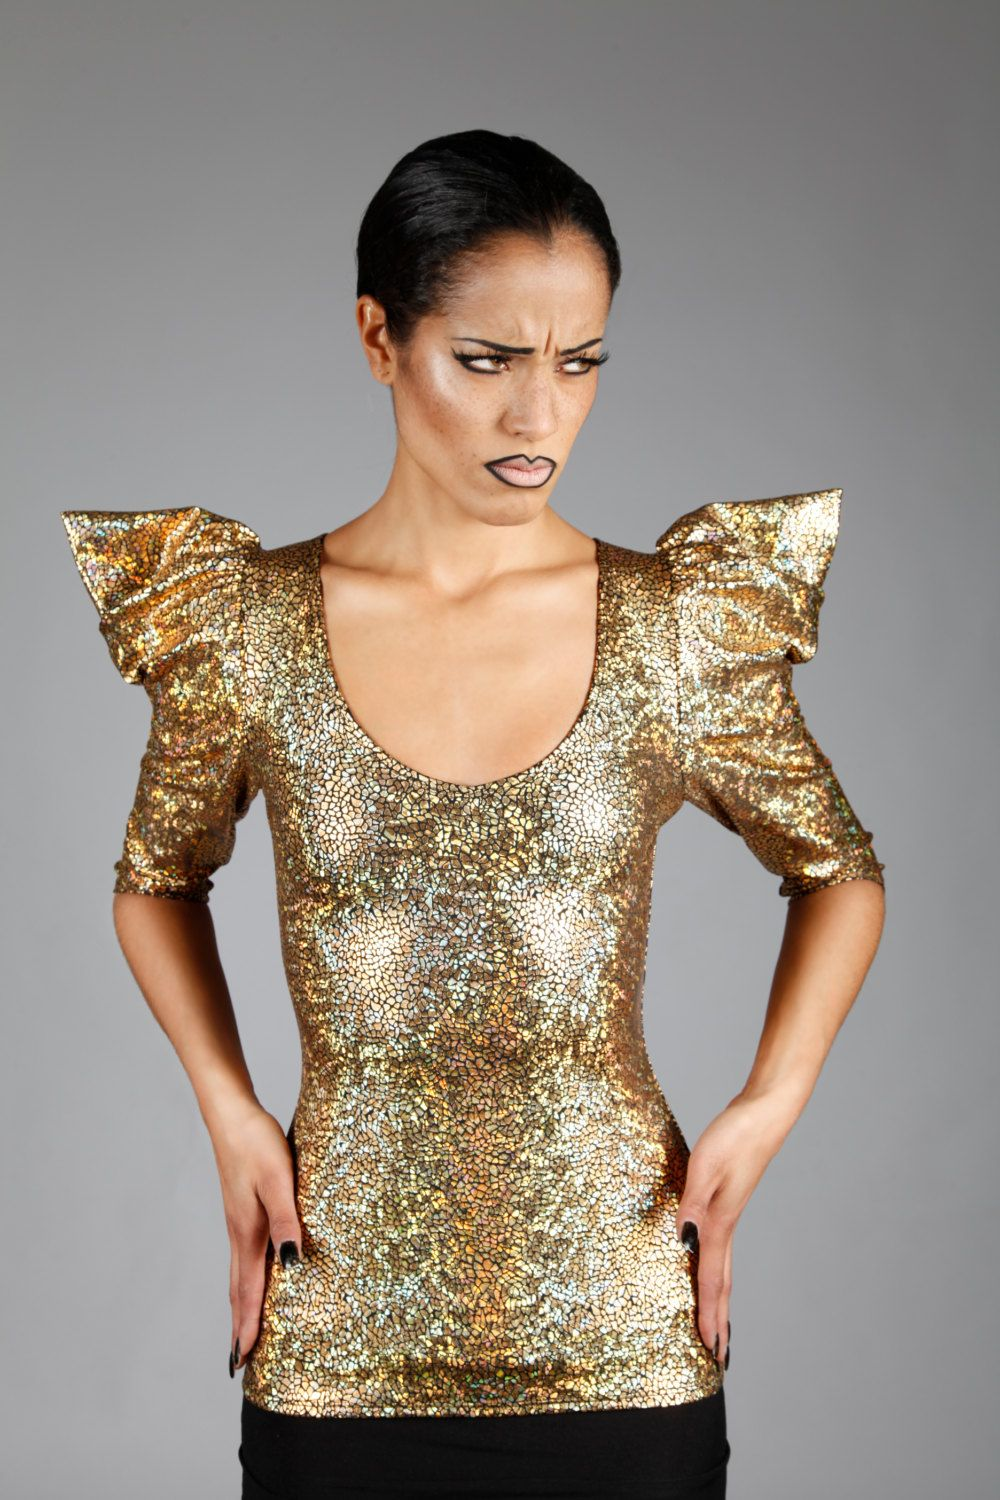 holographic gold top w. pointy puffy sleeves, dance stage wear